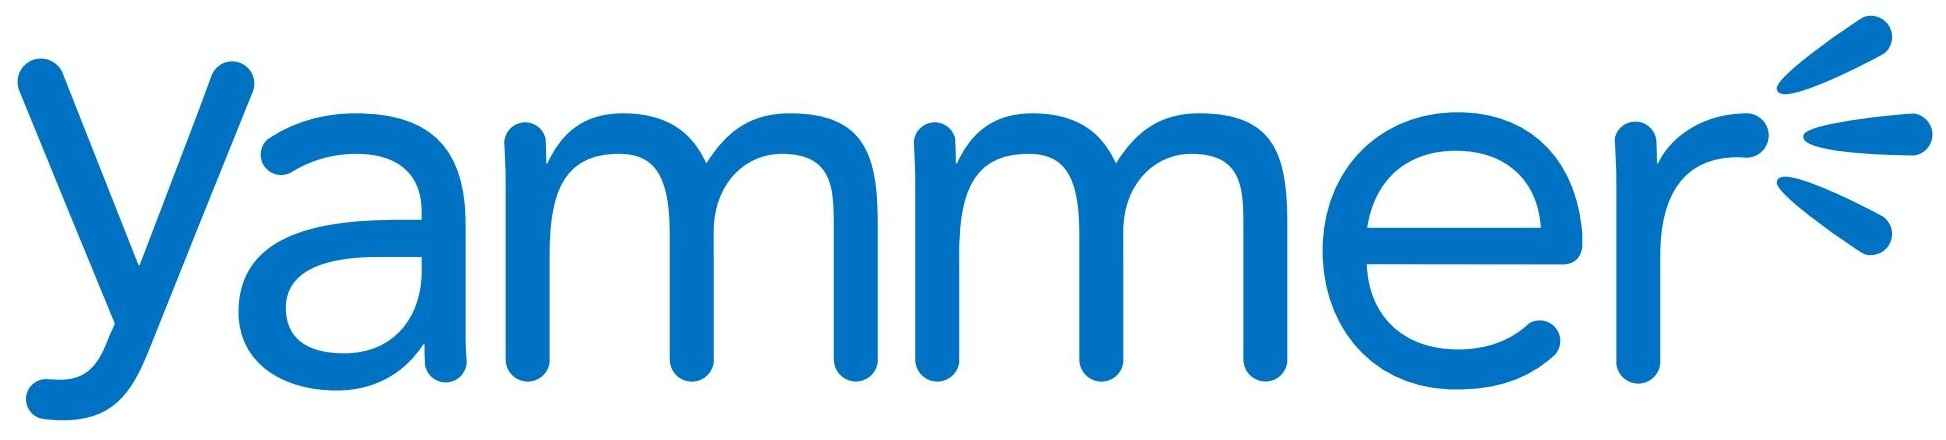 Yammer Logo png